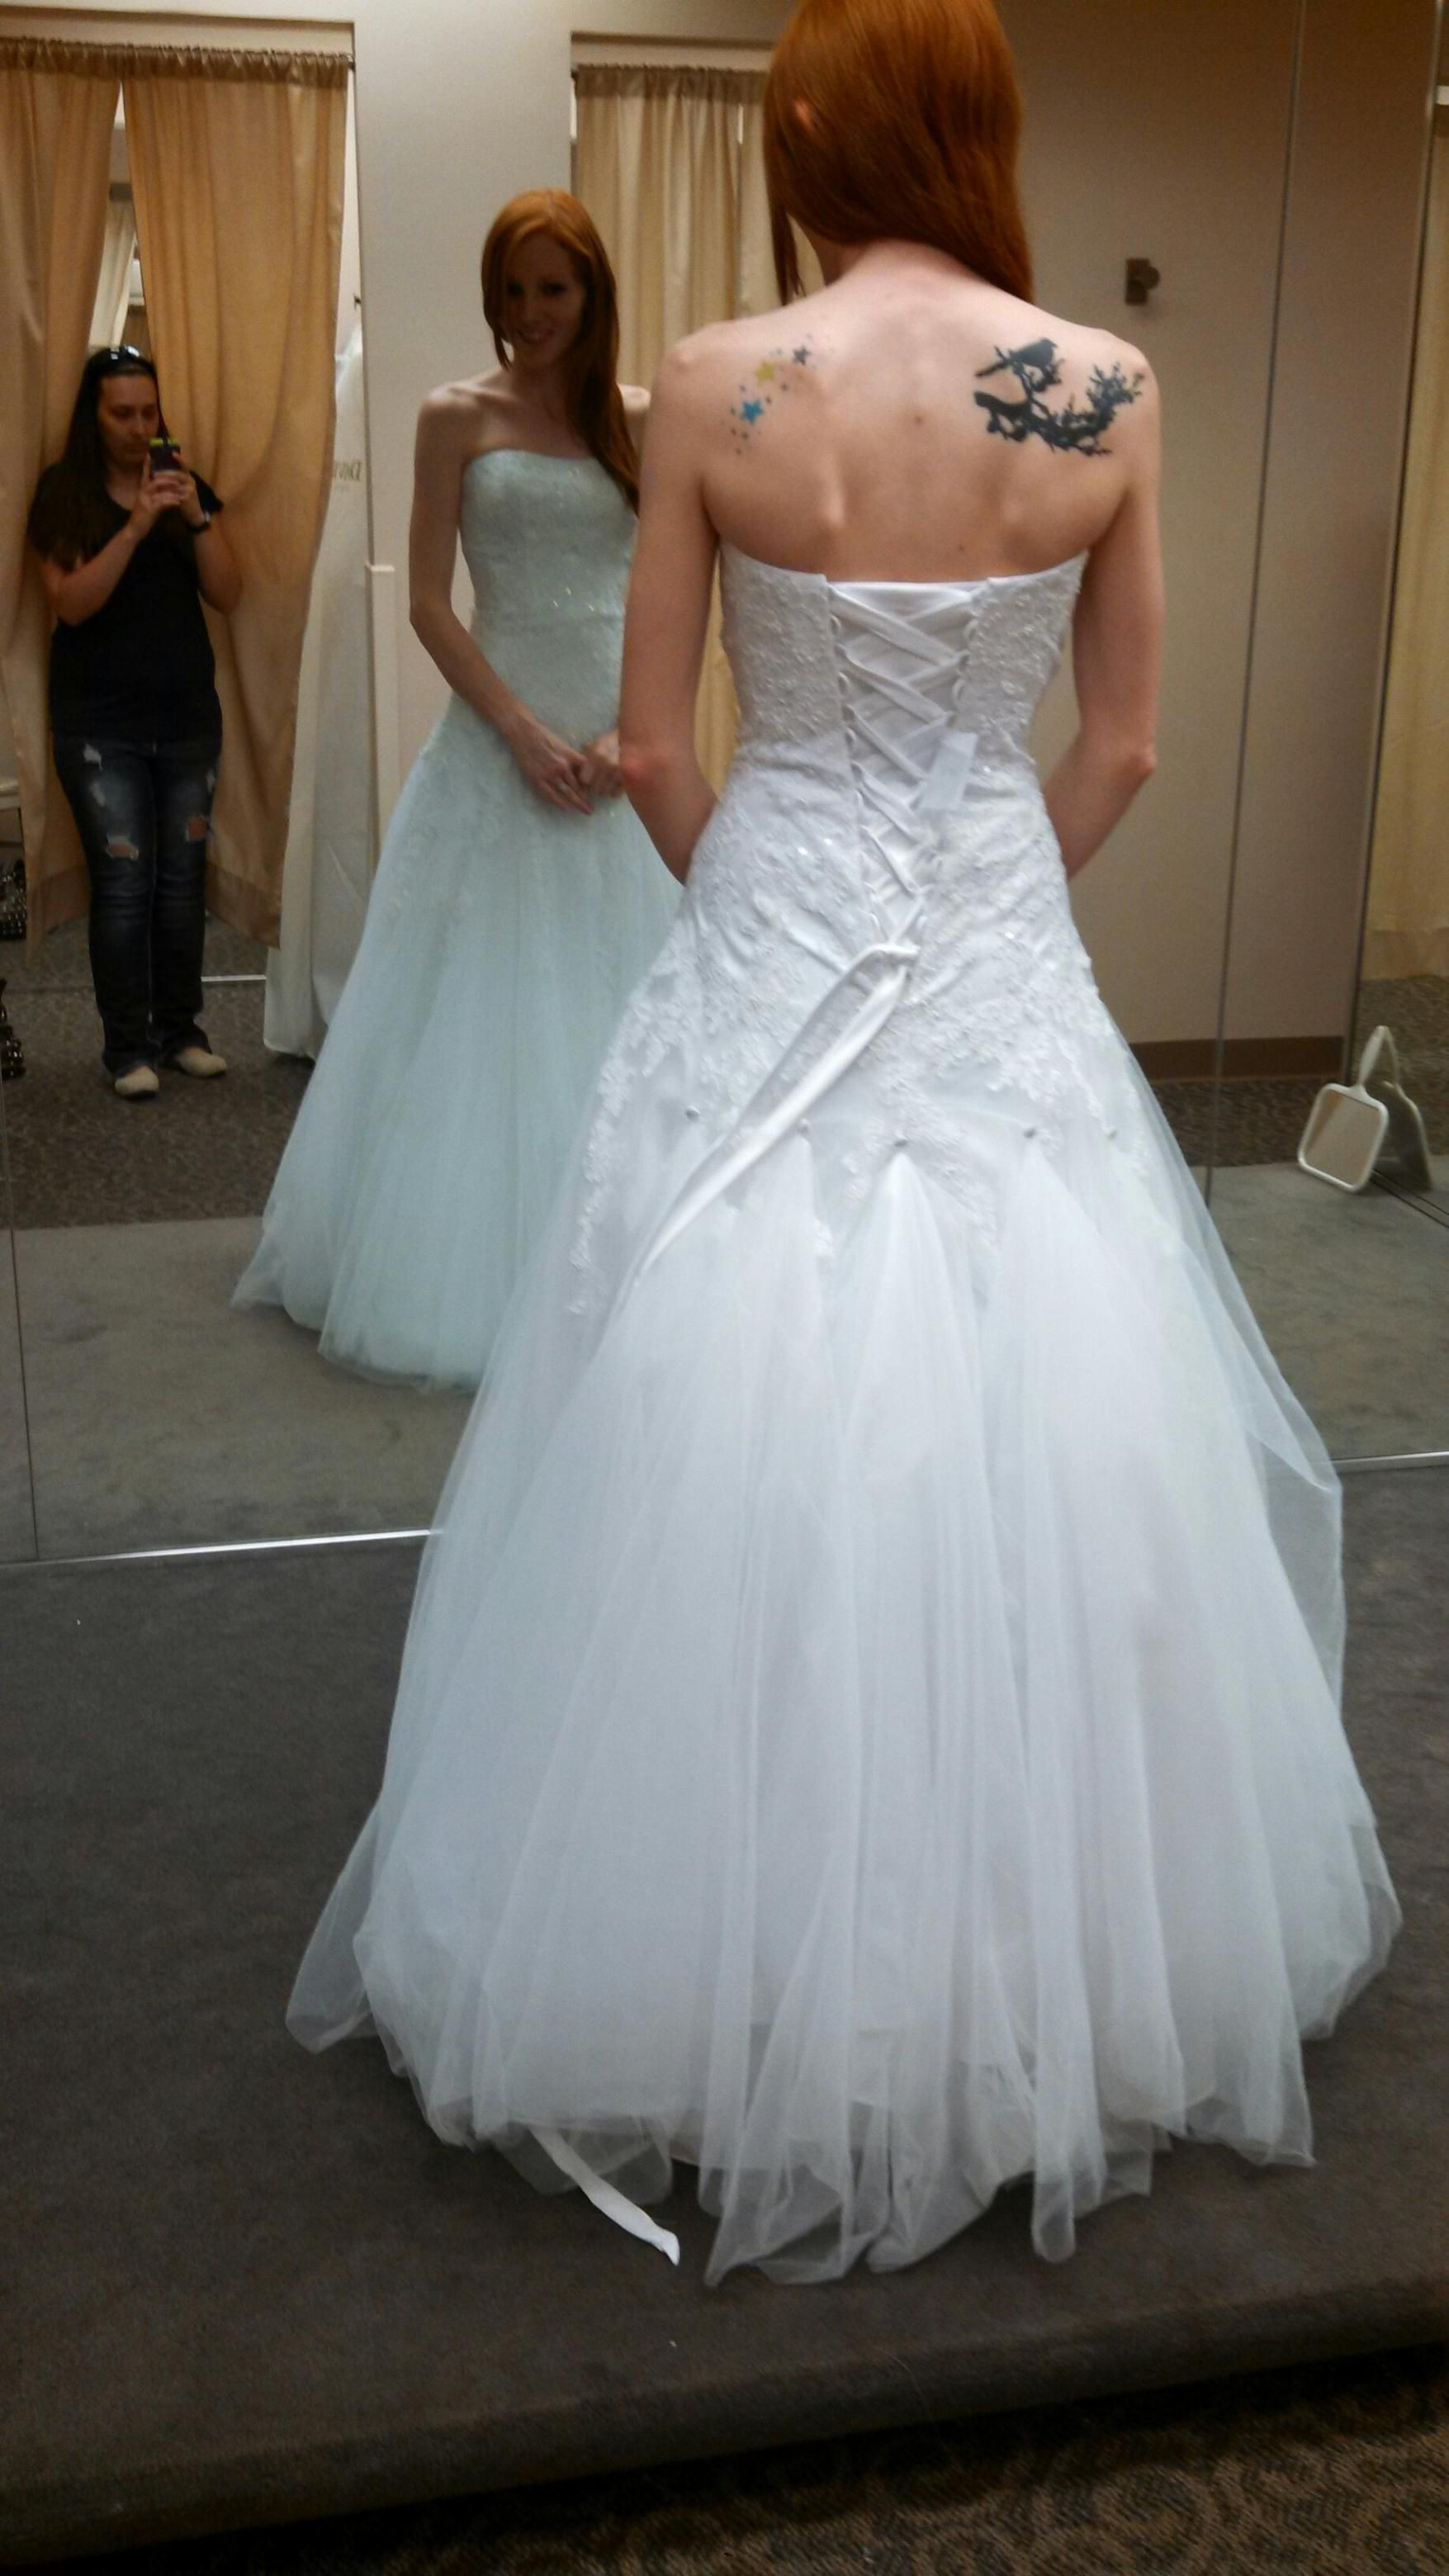 Best ideas about Wedding Dress Bustle DIY . Save or Pin Bustle for tulle wedding dress suggestions Weddingbee Now.